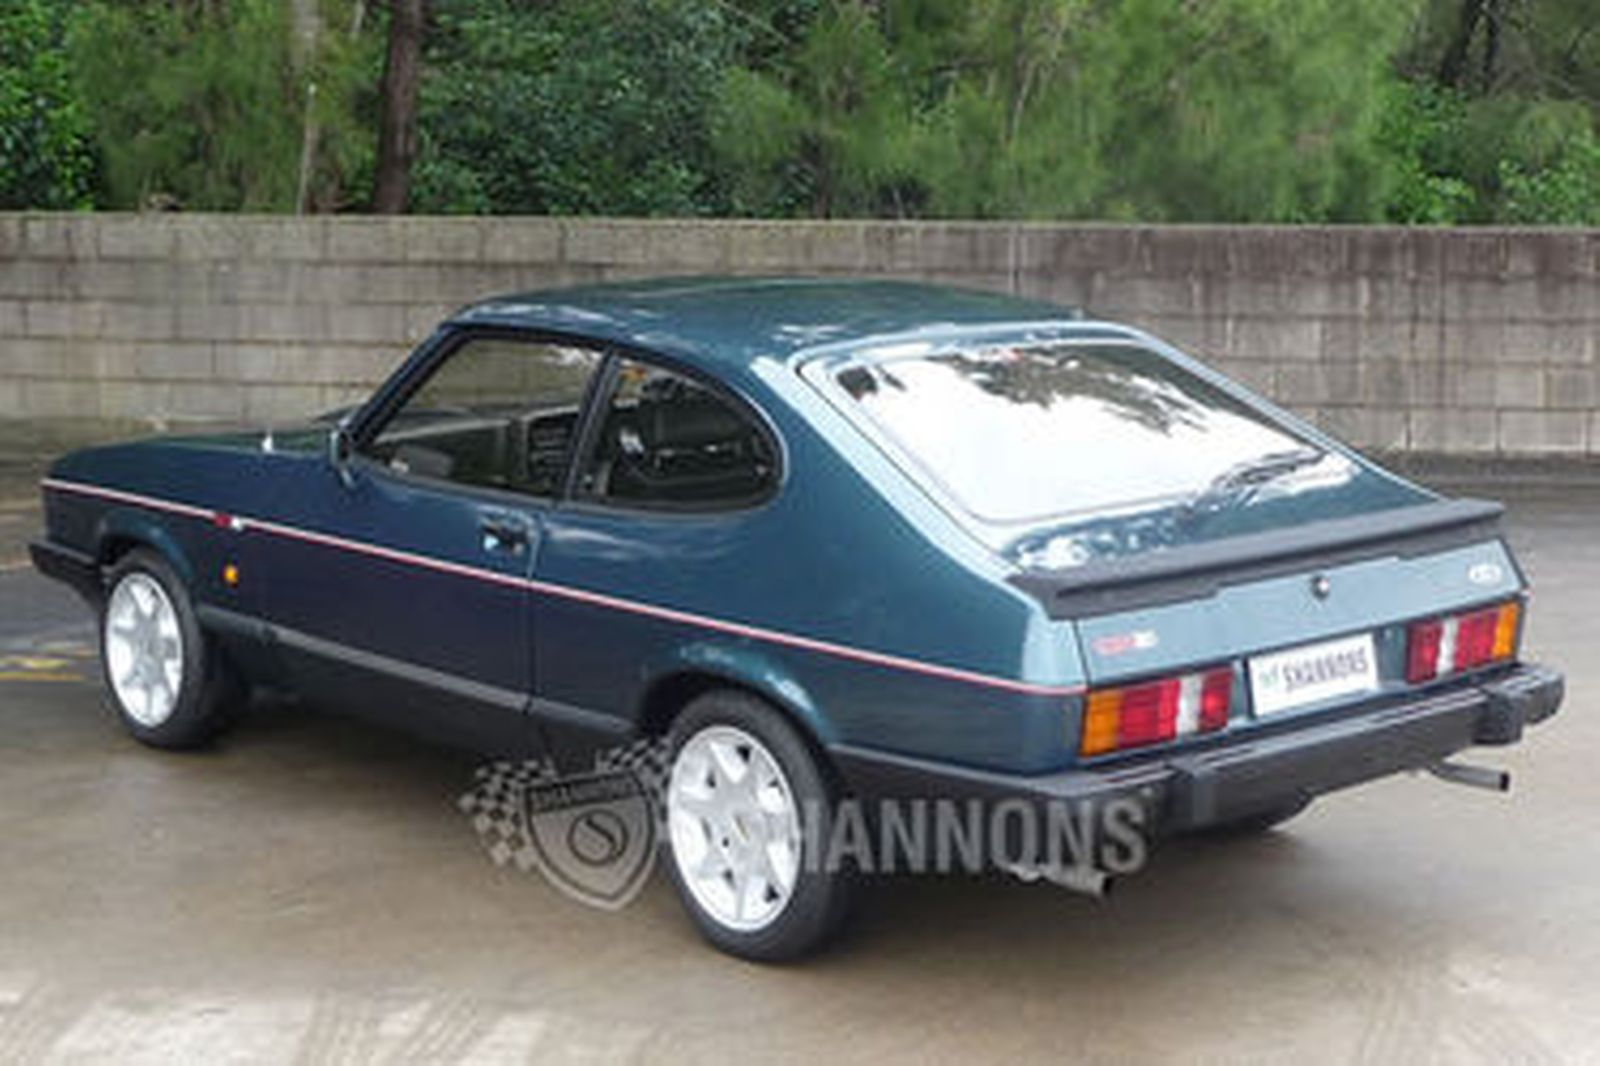 Ford Capri Brooklands Coupe Auctions - Lot 17 - Shannons